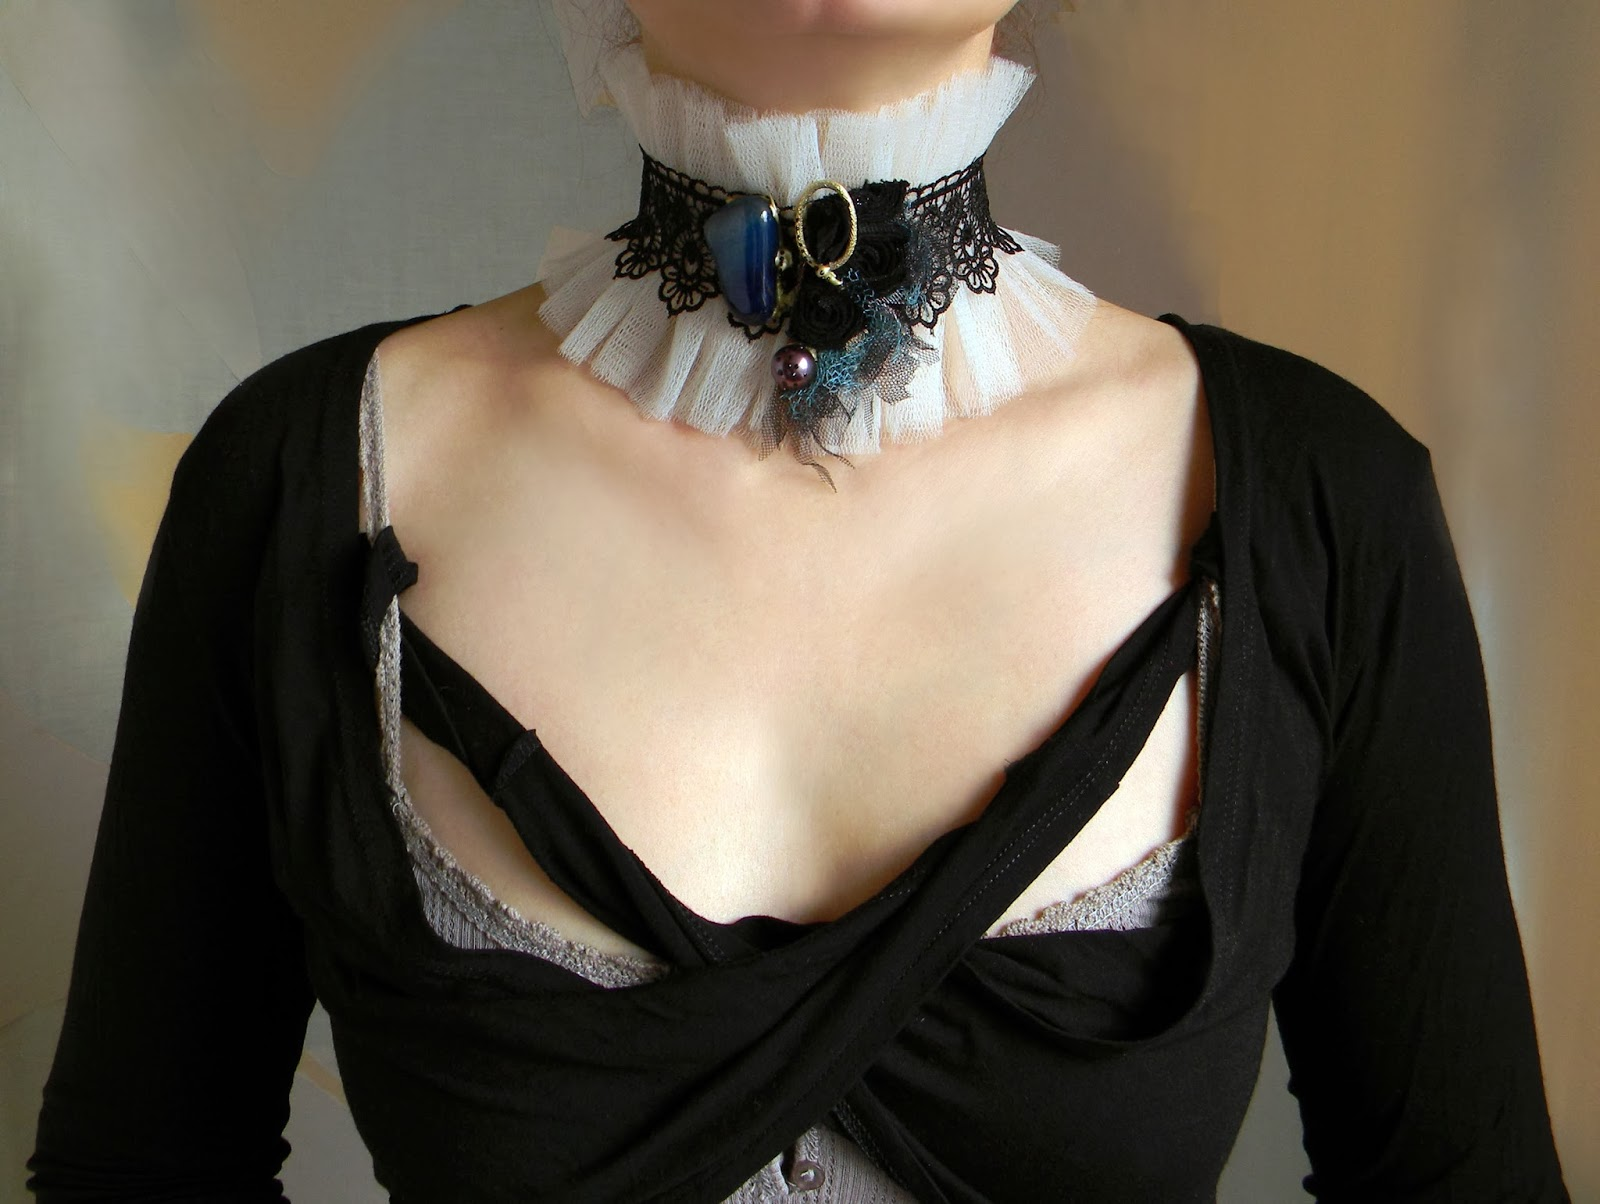 Ruffled Tulle and Lace Victorian Choker, Gothic Neck Corset with Raw Blue Agate and Embroidery